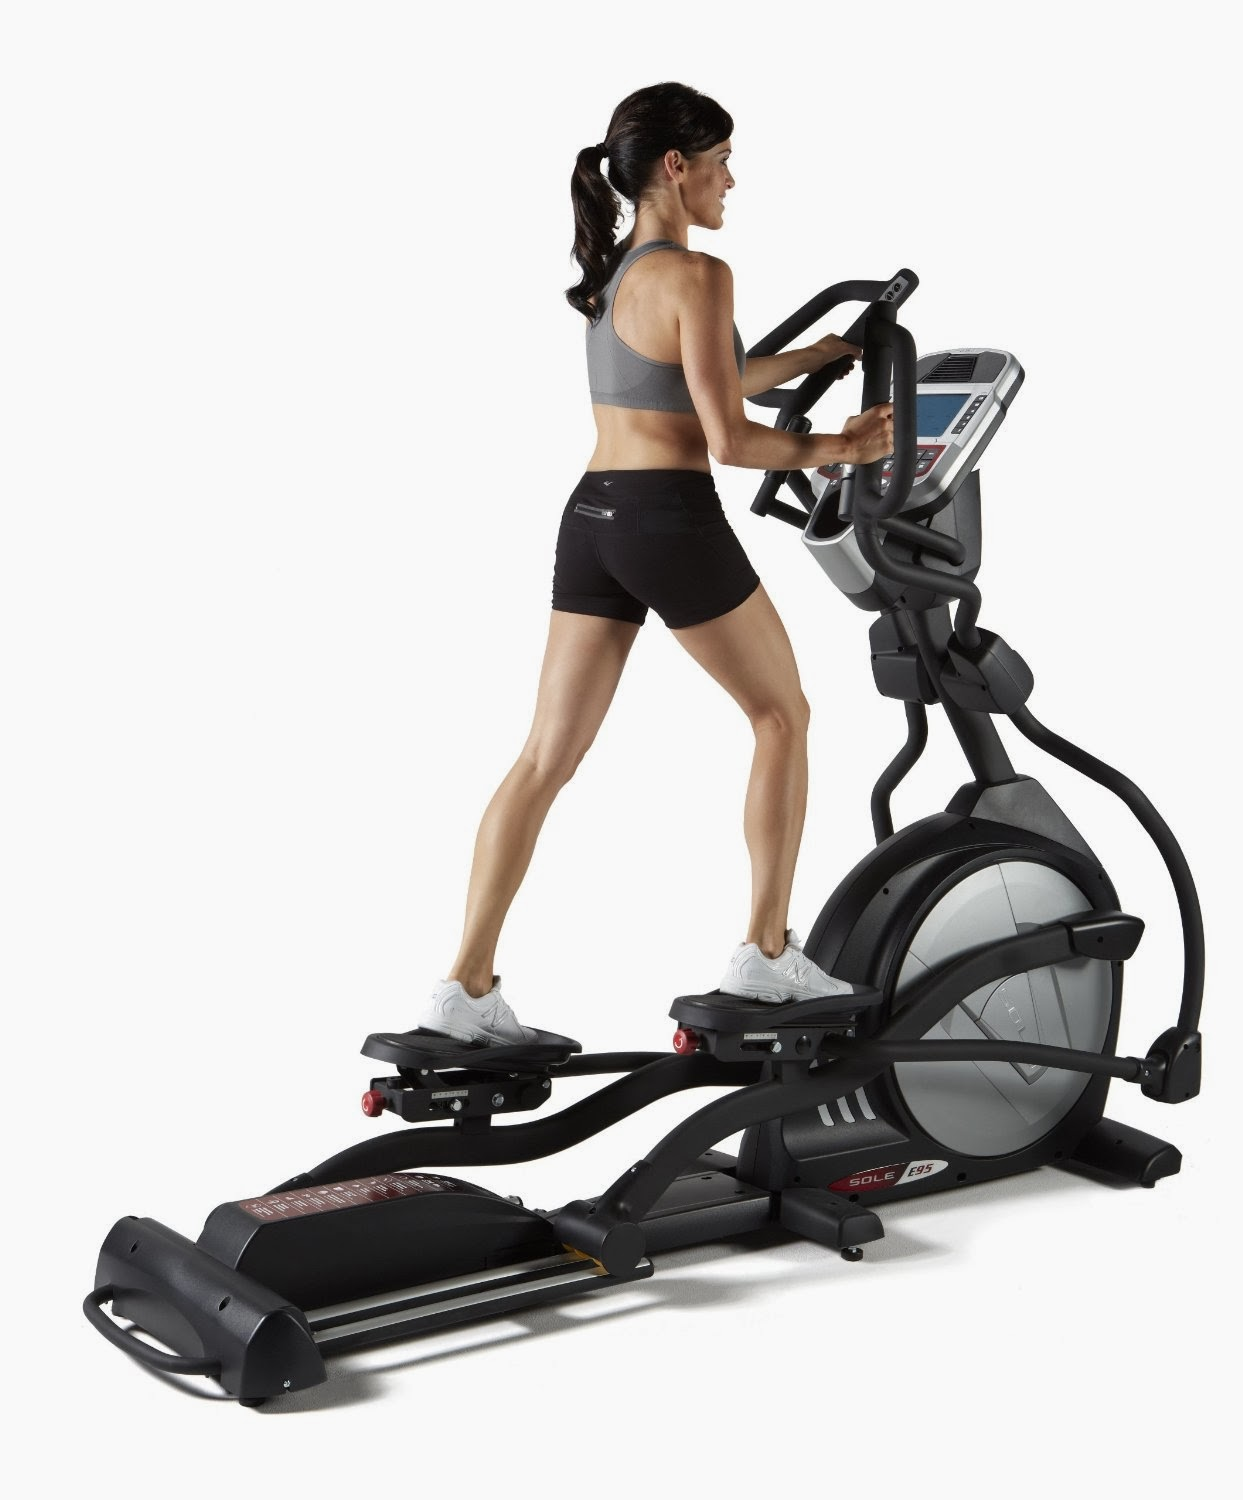 Sole E95 Elliptical Trainer Machine, versus Sole E35, compare, review and buy at low prices